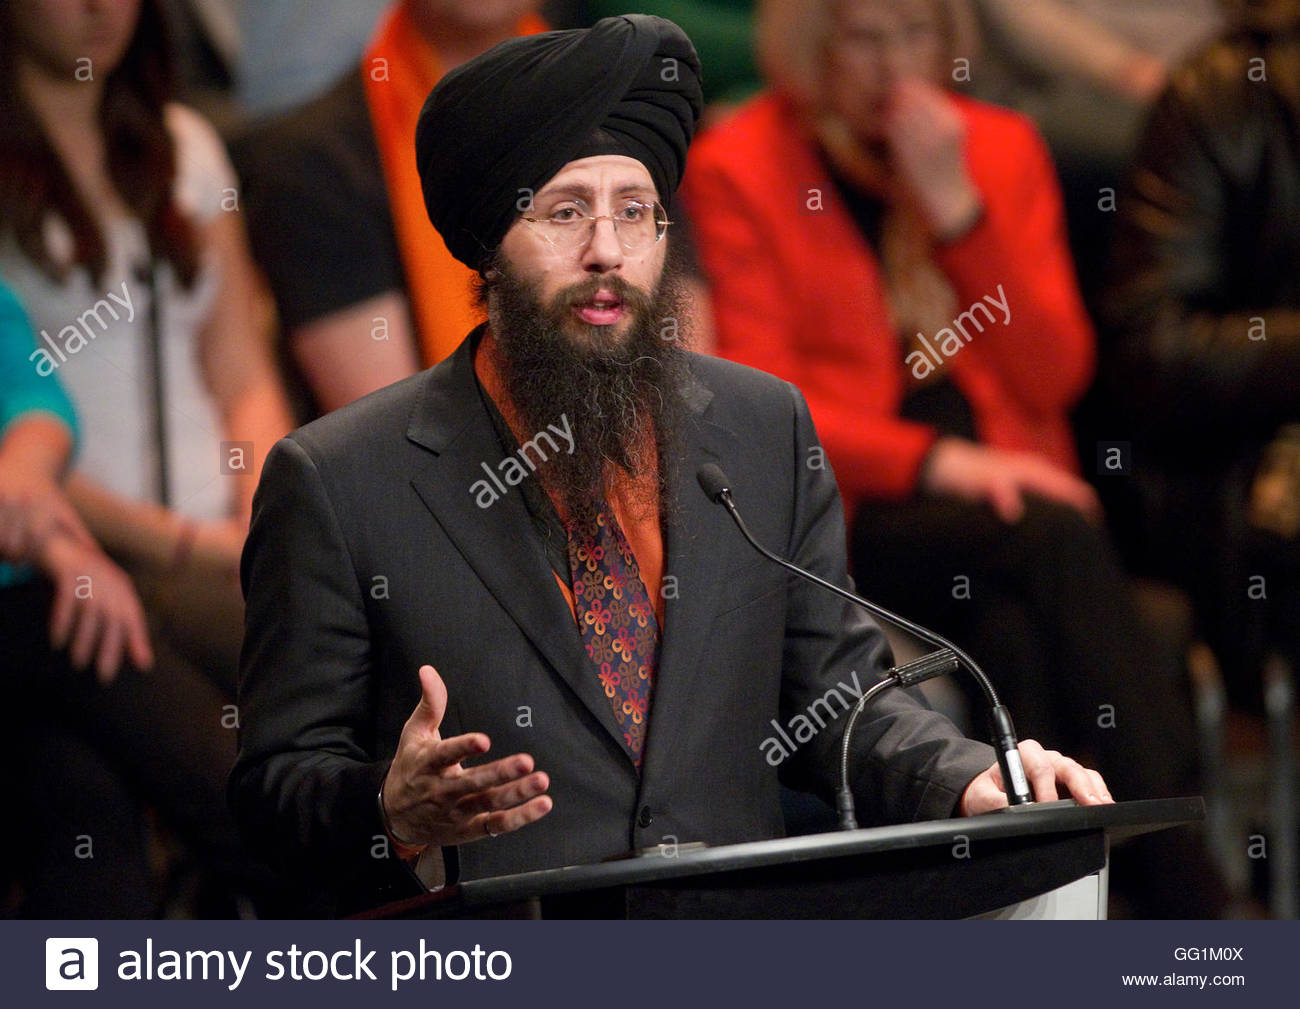 ndp leadership candidate martin singh answers a question during ndp leadership candidate martin singh answers a question during the ndp leadership debate in vancouver british columbia 11 2012